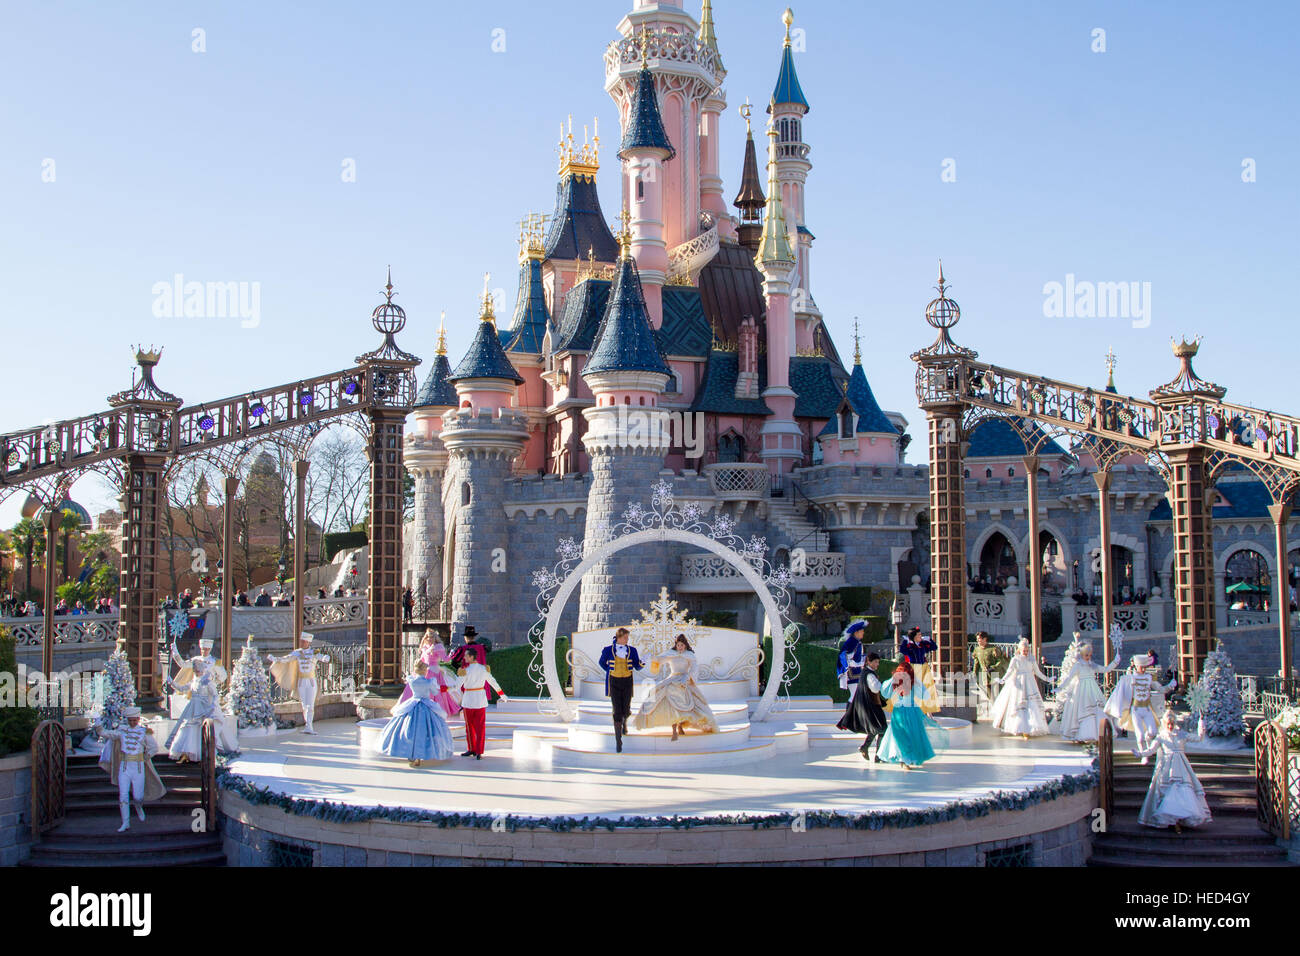 royal christmas wishes at disneyland paris marne la vallee france stock photo 129366747 alamy. Black Bedroom Furniture Sets. Home Design Ideas